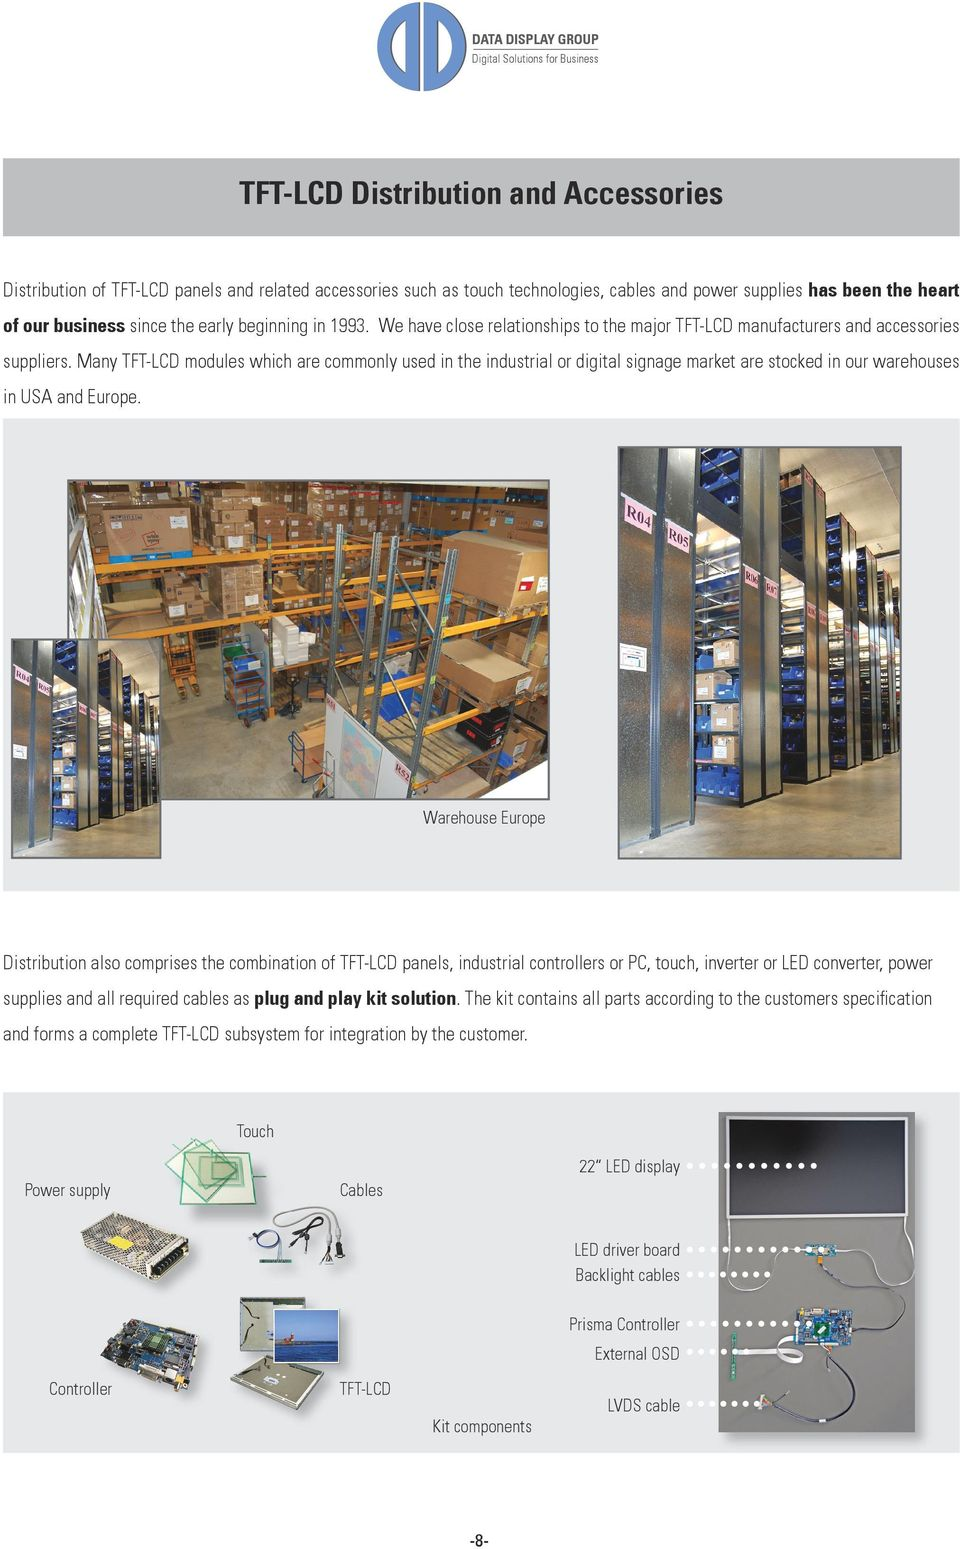 Many TFT-LCD modules which are commonly used in the industrial or digital signage market are stocked in our warehouses in USA and Europe.